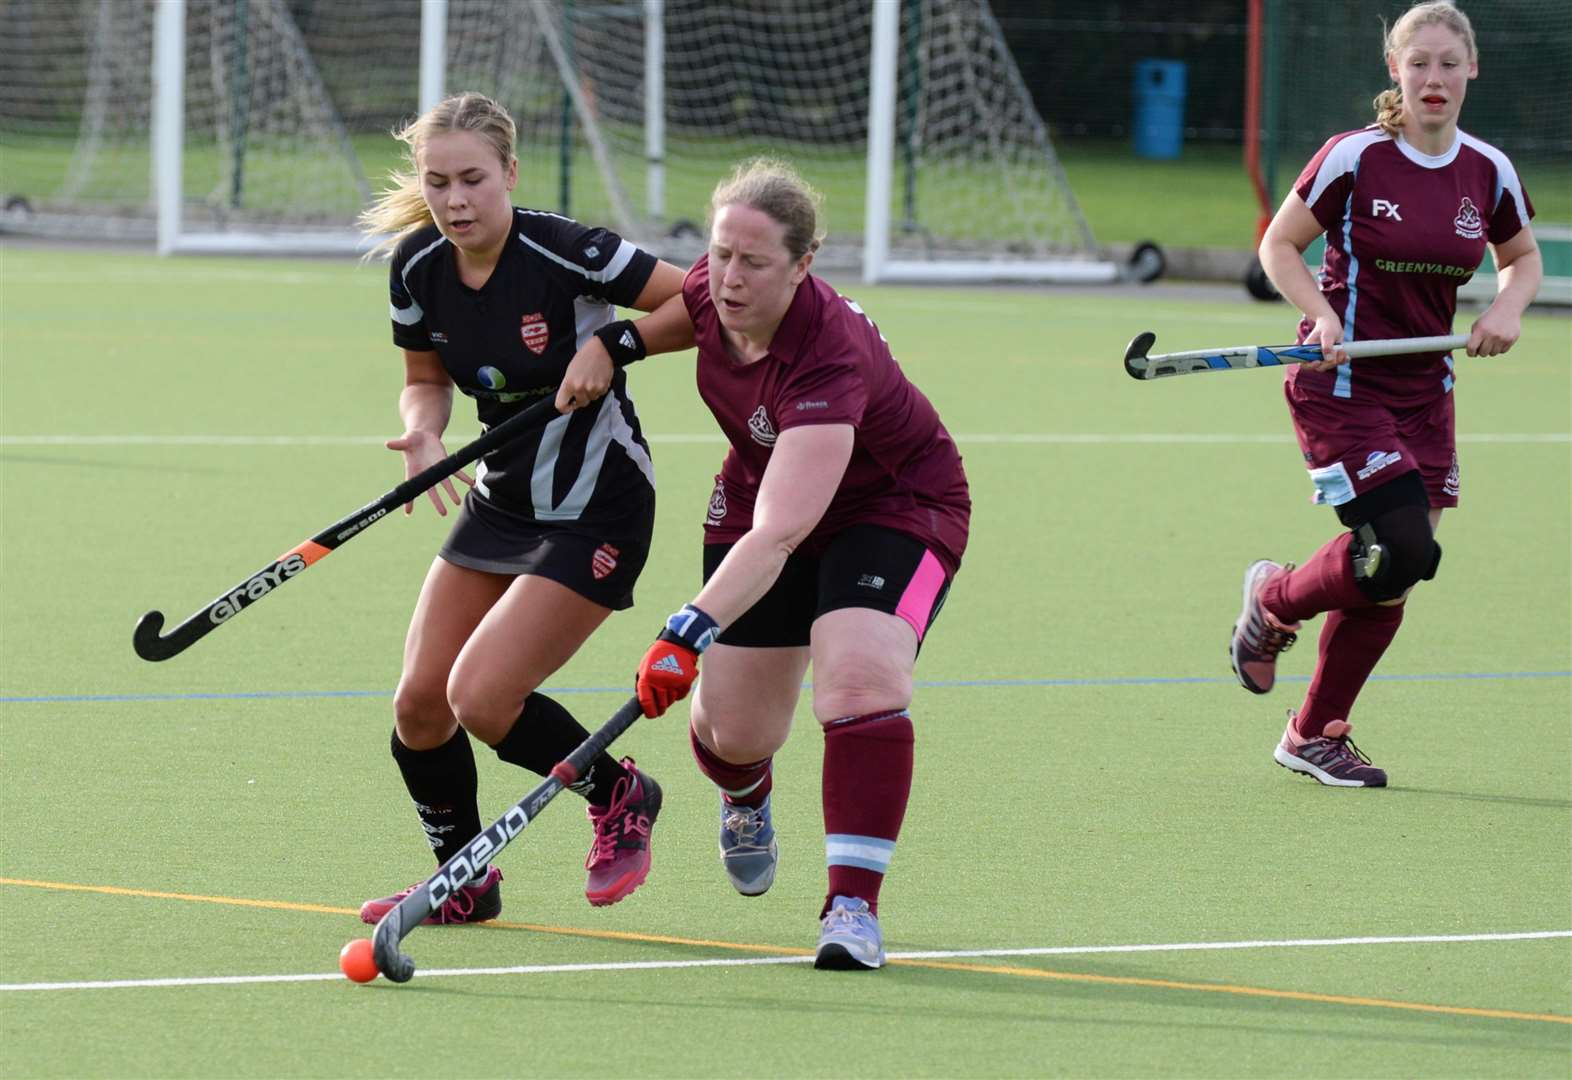 HOCKEY: Fifth successive win sees Dragons roar into third spot